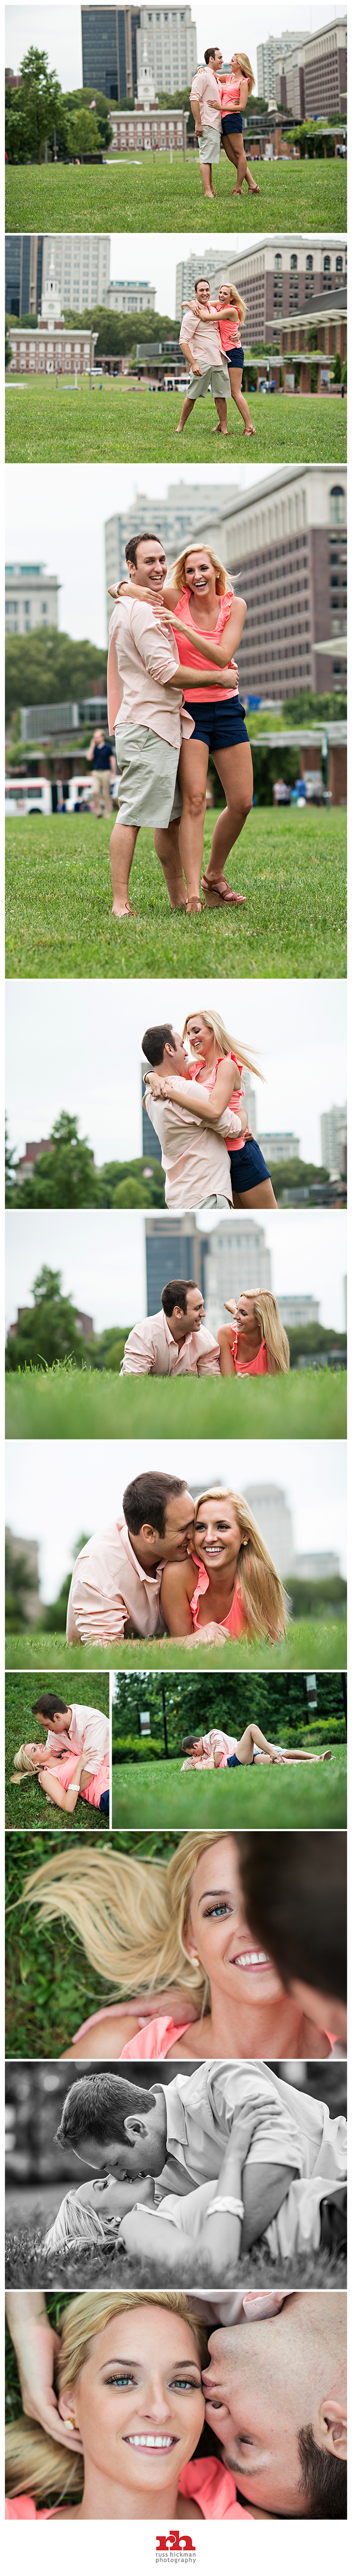 Philadelphia Wedding Photographer MSE0004